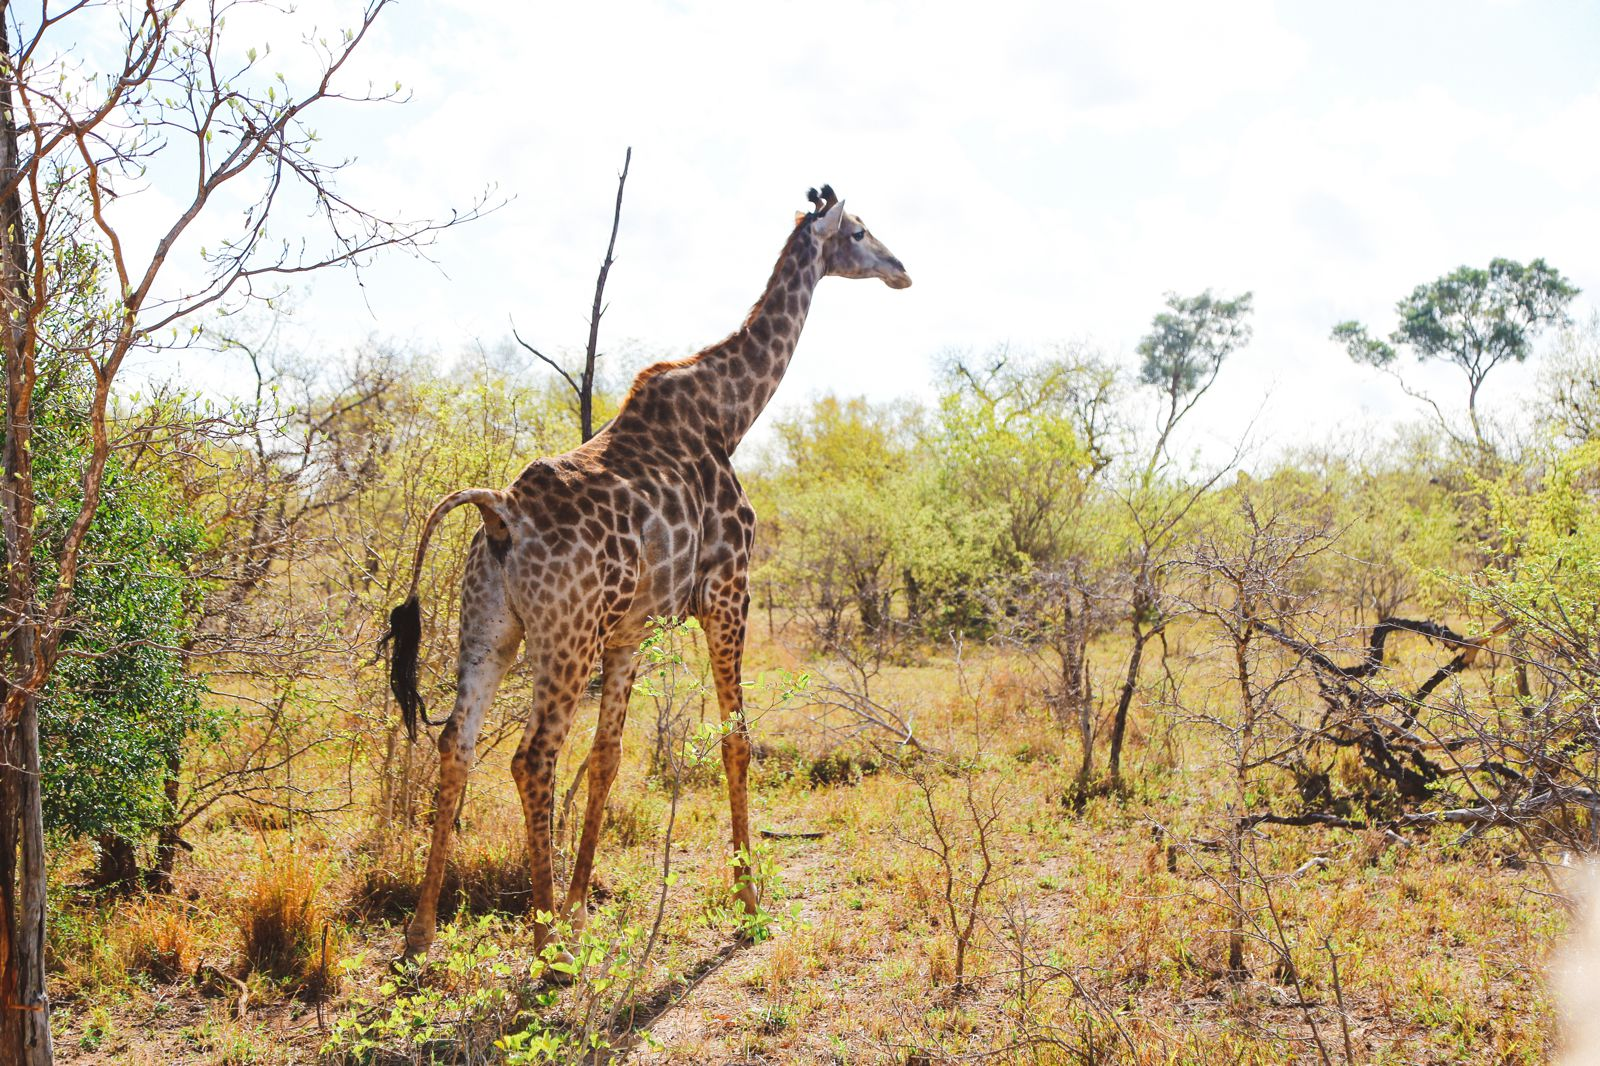 Sunrise Till Sunset - A 24 Hour South African Safari Diary (19)